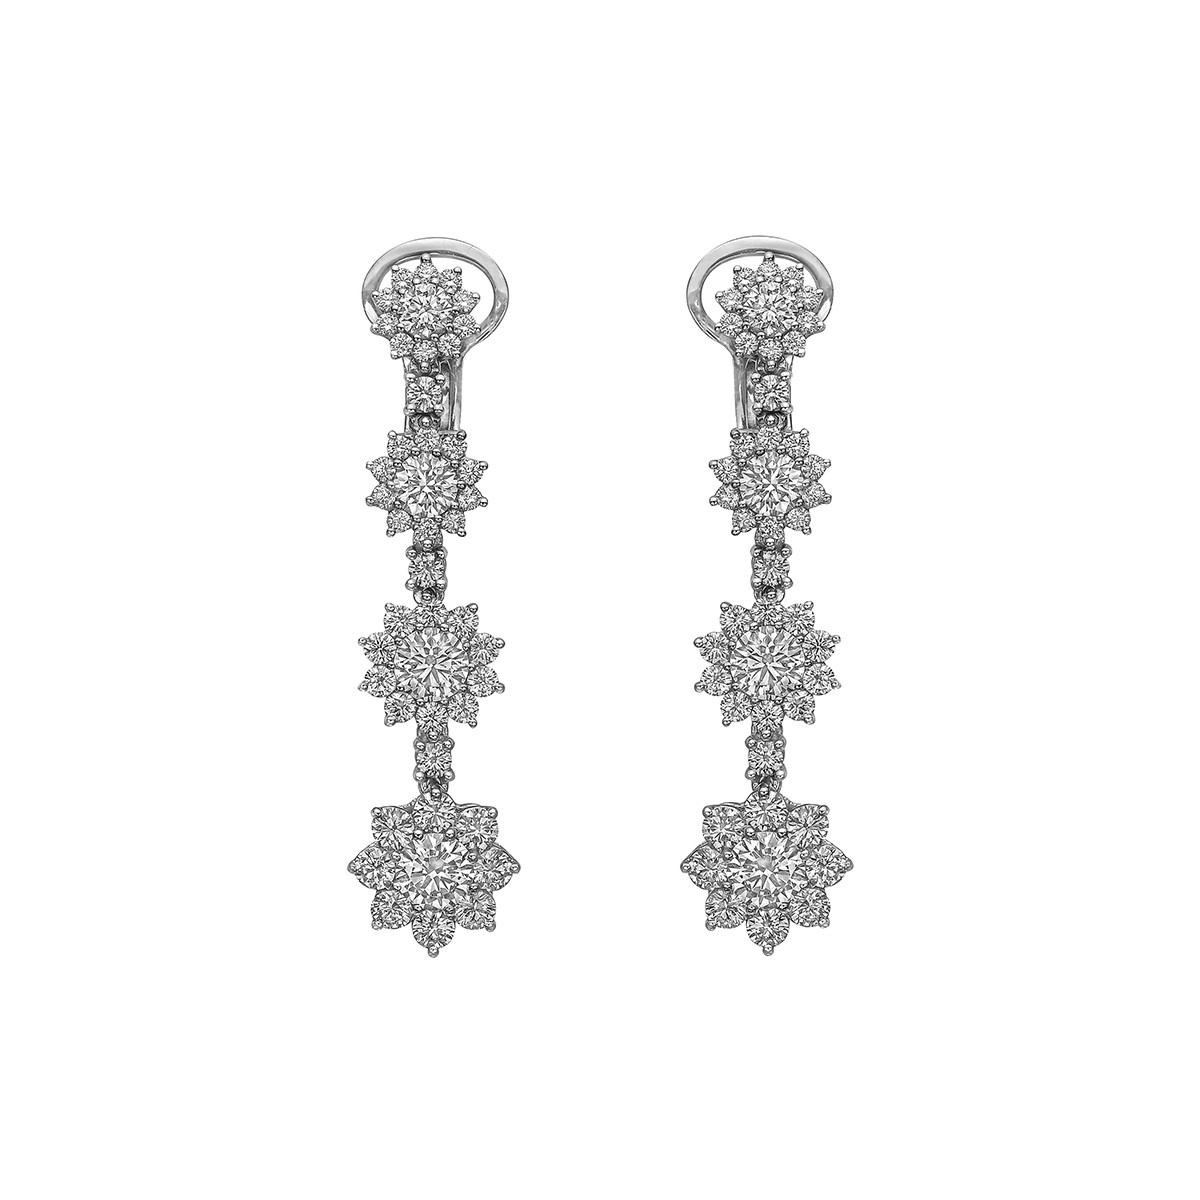 18k White Gold & Diamond Starburst Drop Earrings